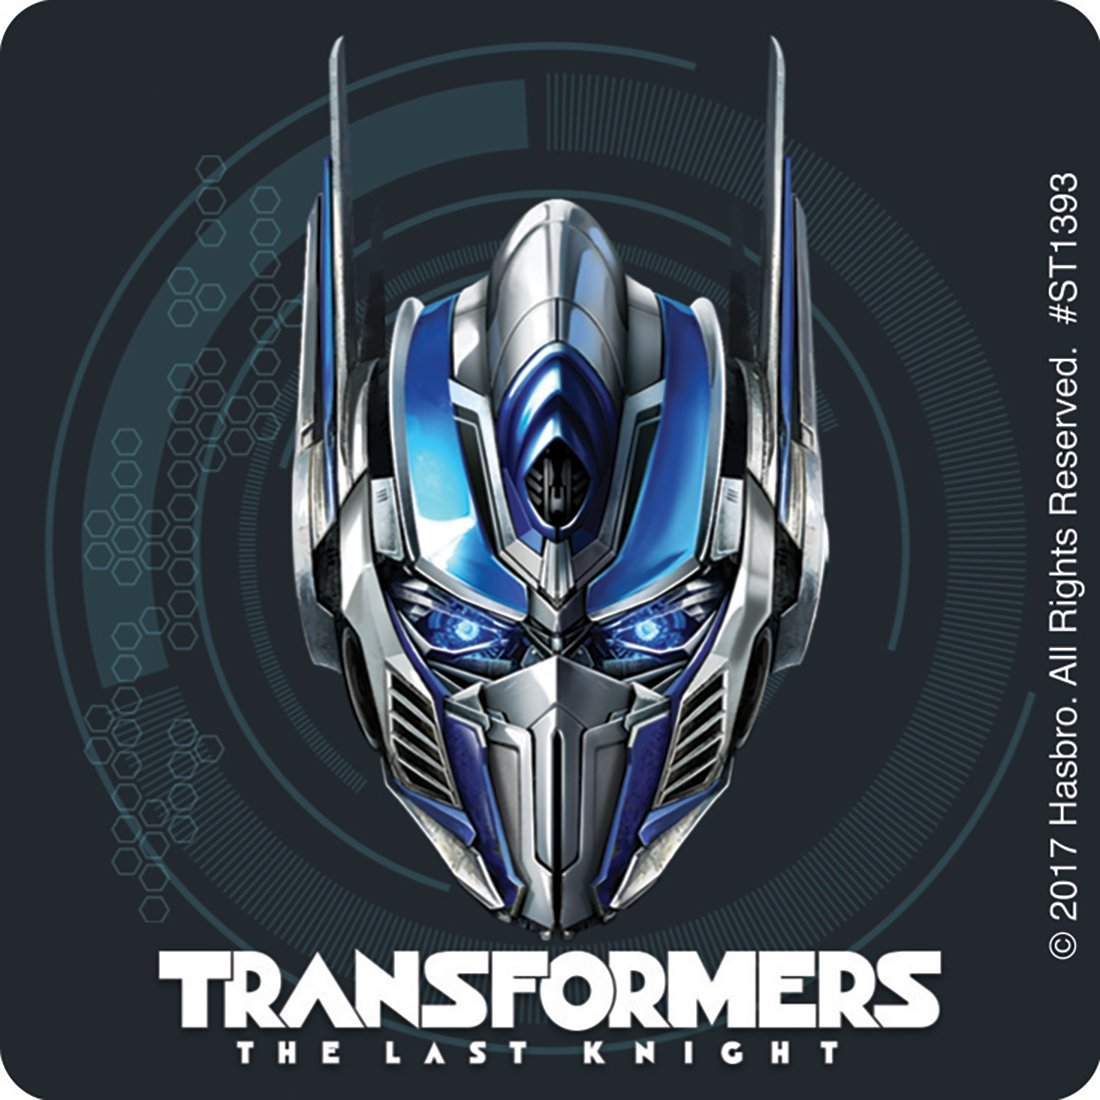 Transformers The Last Knight Stickers Tfw2005 The 2005 Boards